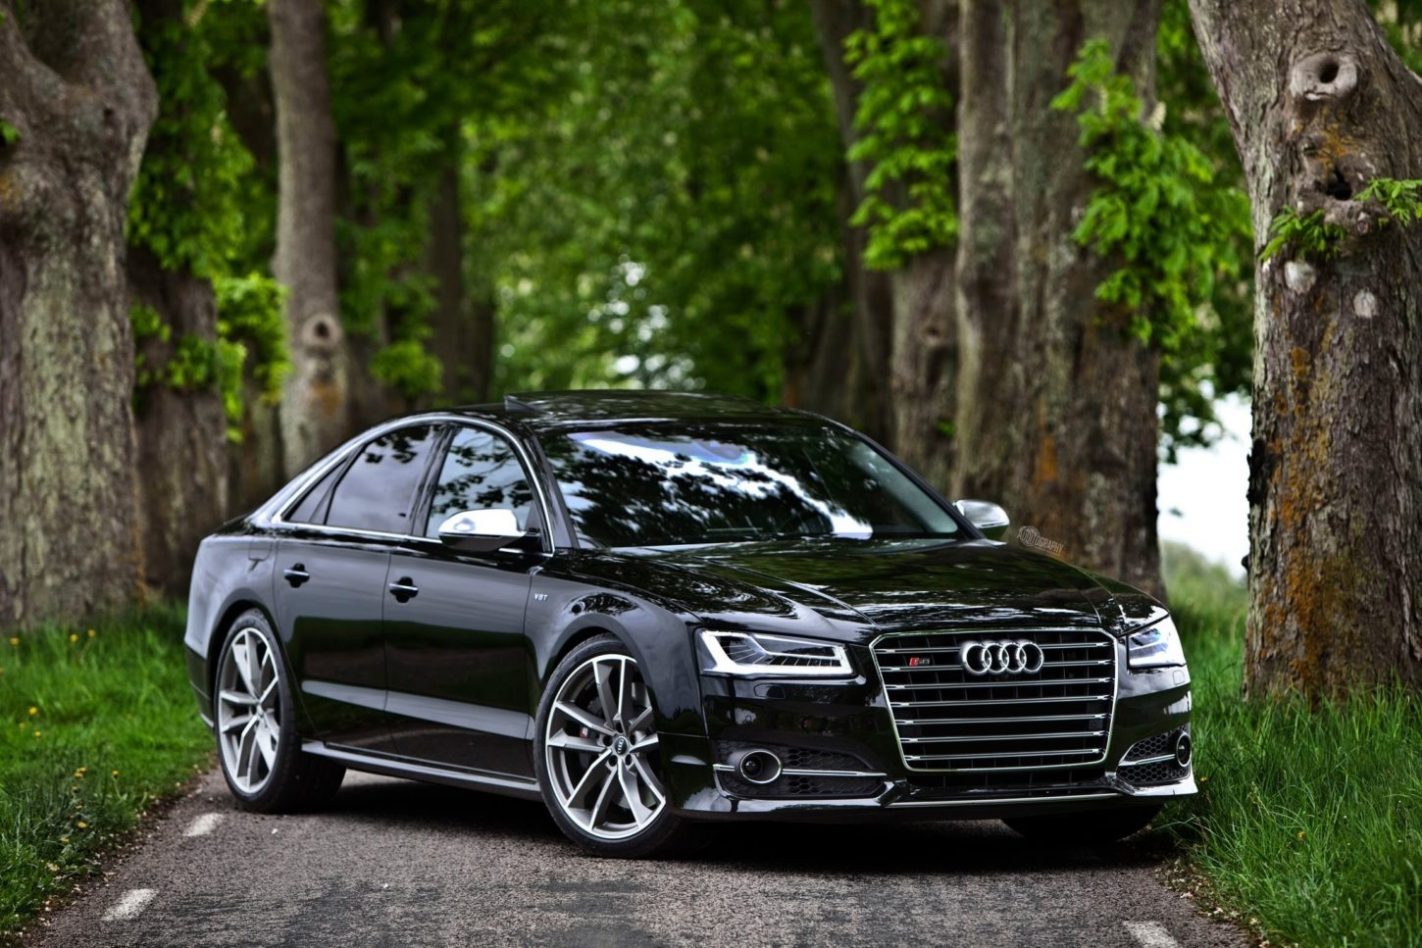 Audi S8 Wallpaper   44 Group Wallpapers 1422x948